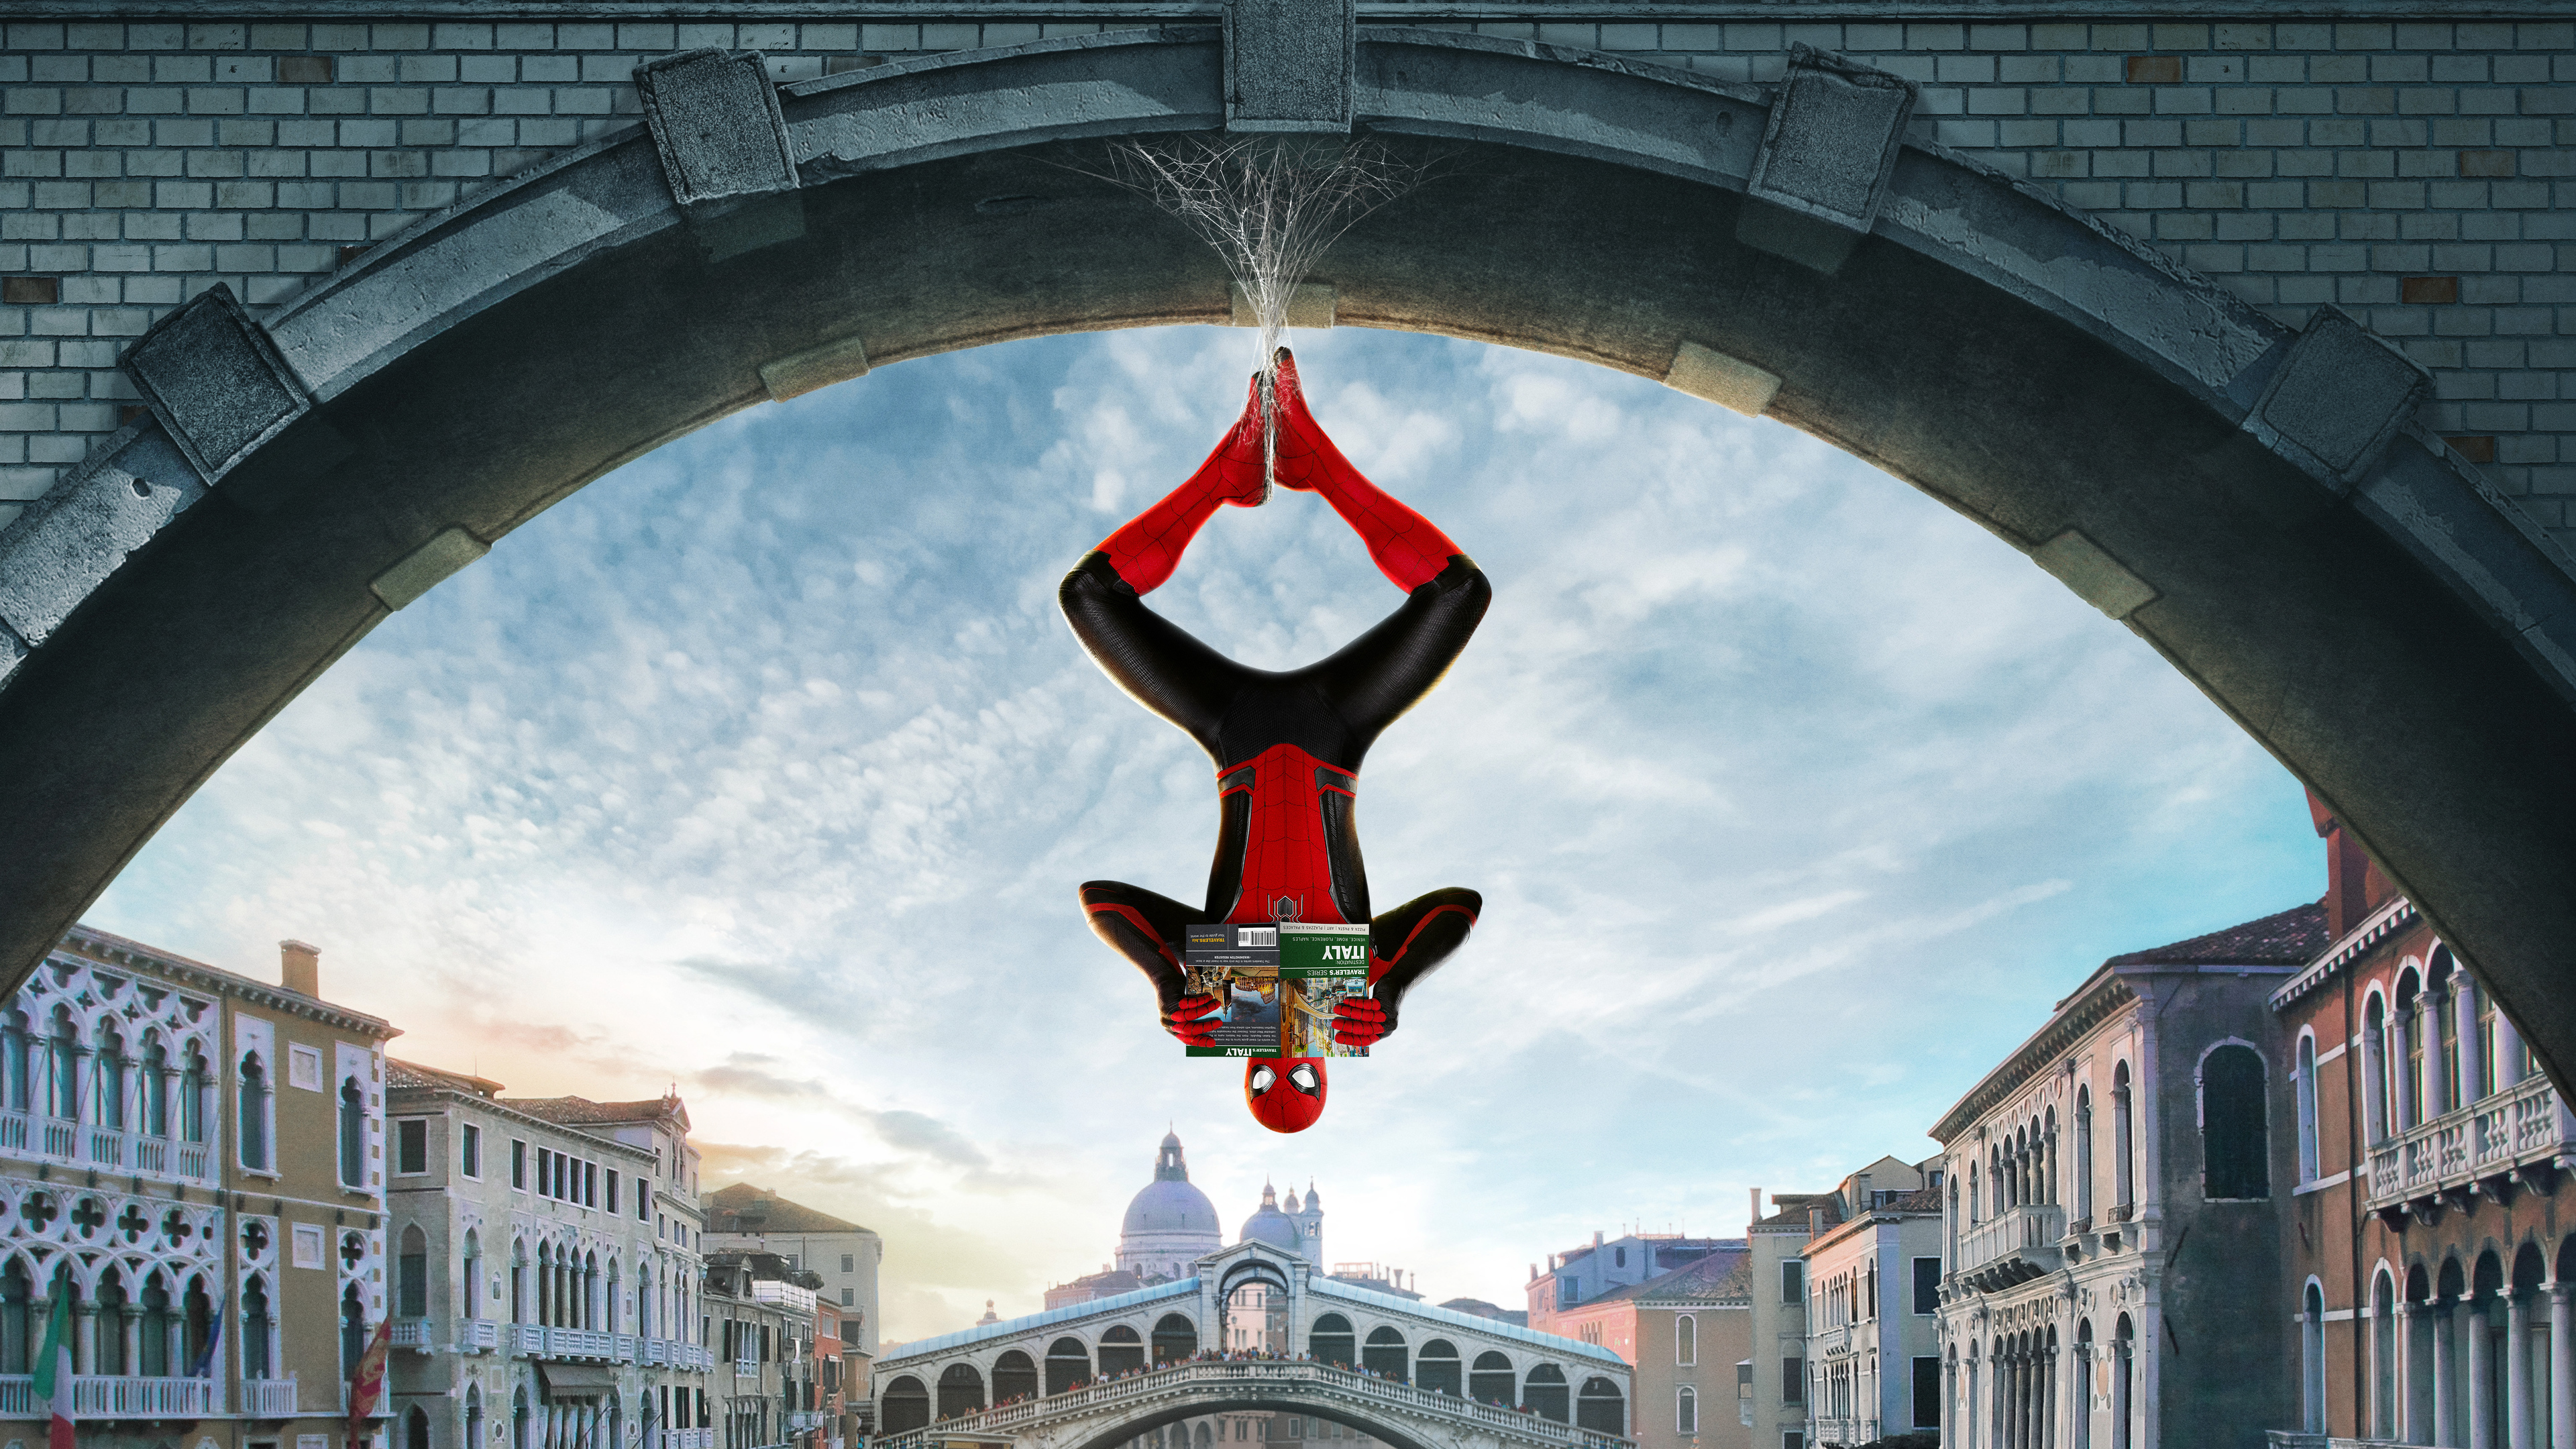 spider man far from home movie 1555208801 - Spider Man Far From Home Movie - tom holland wallpapers, superheroes wallpapers, spiderman wallpapers, spiderman far from home wallpapers, movies wallpapers, hd-wallpapers, 4k-wallpapers, 2019 movies wallpapers